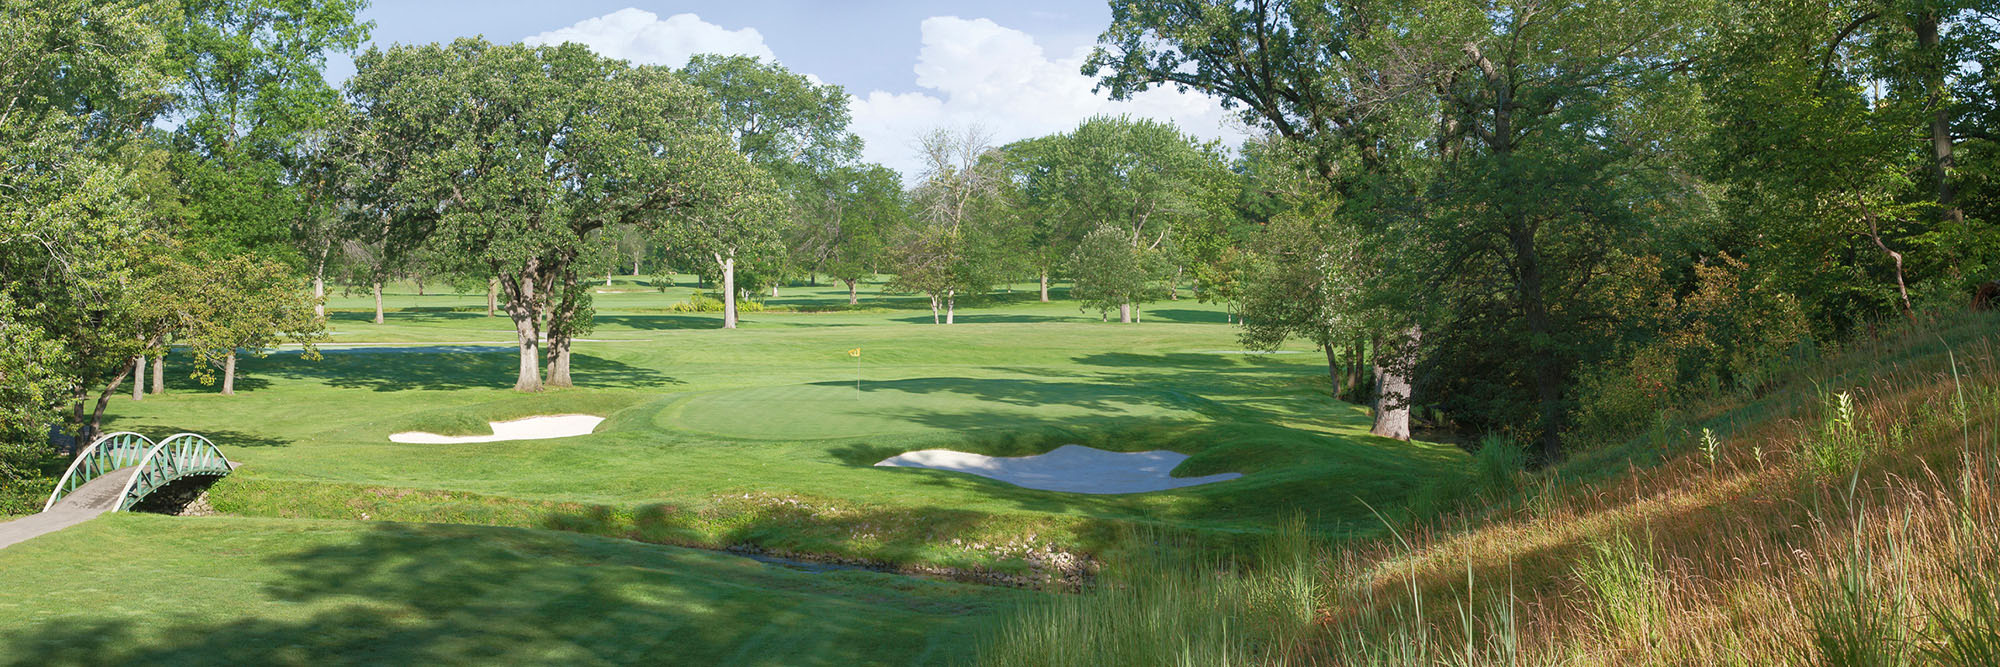 Golf Course Image - Olympia Fields North No. 16